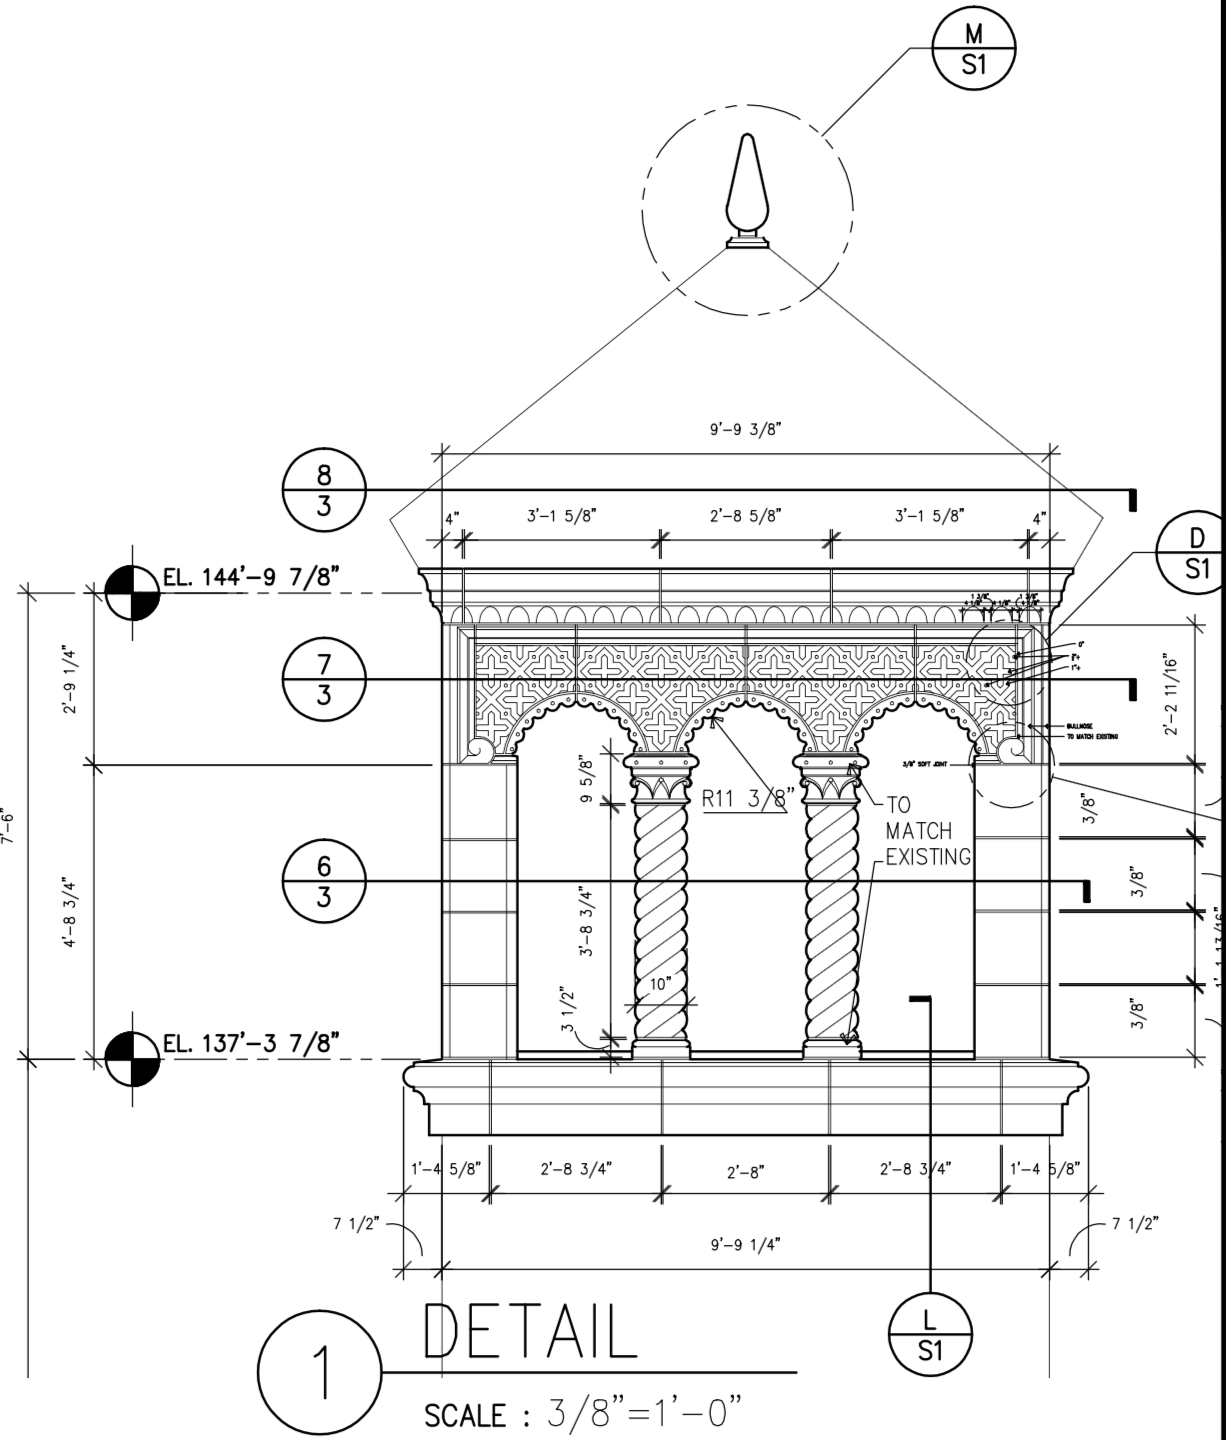 Design Details for the top of the clock tower at highland park village shopping center